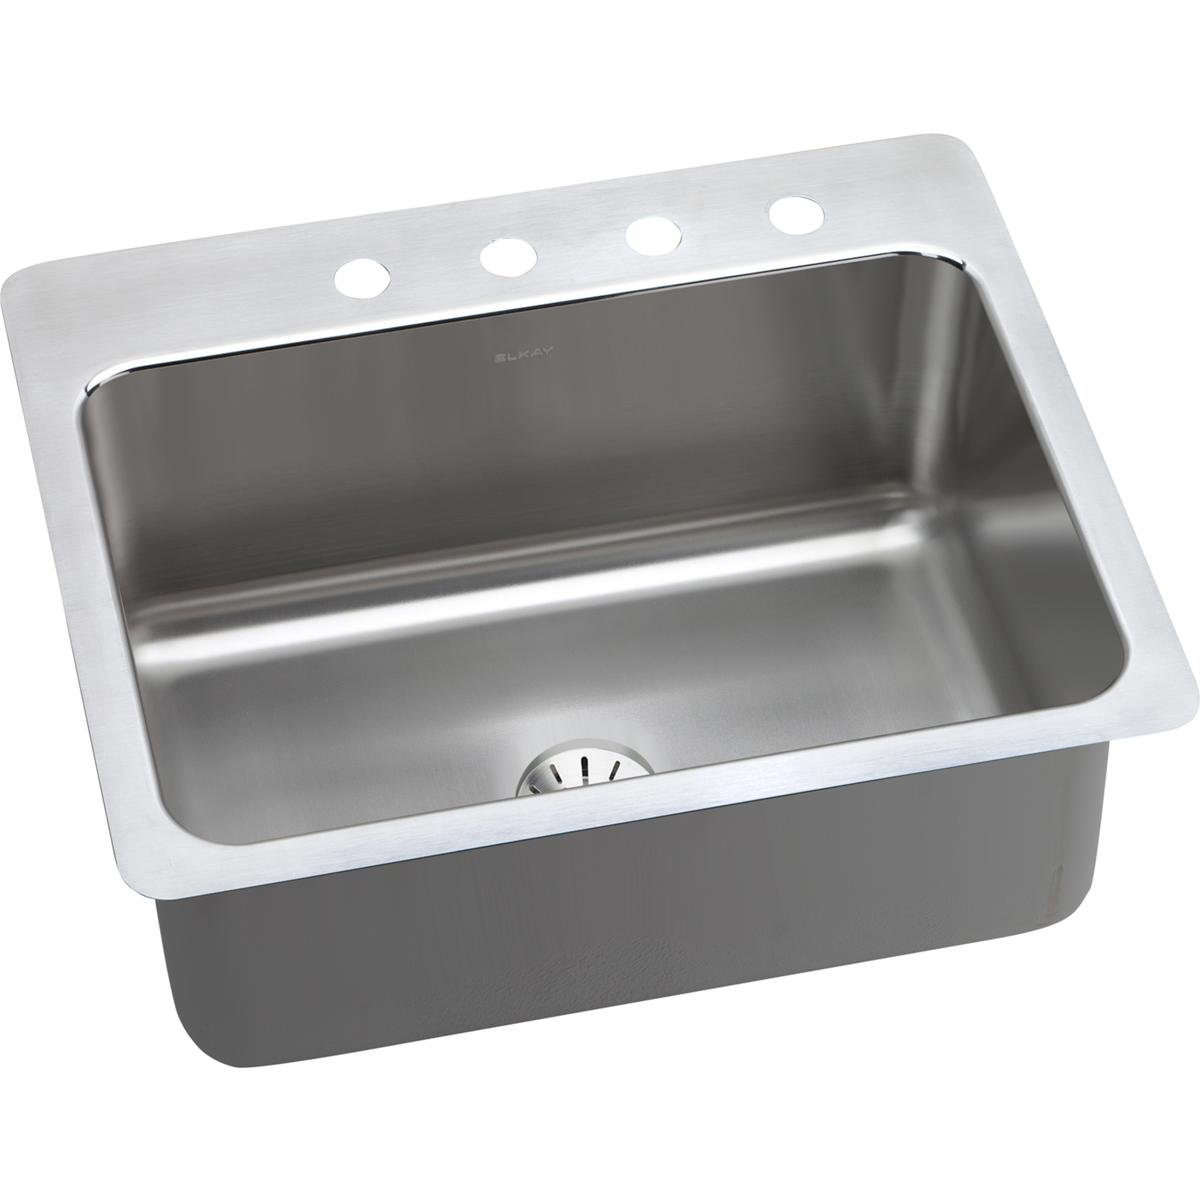 Elkay Lustertone DLSR272210PD1 Single Bowl Dual Mount Stainless Steel Sink with Perfect Drain